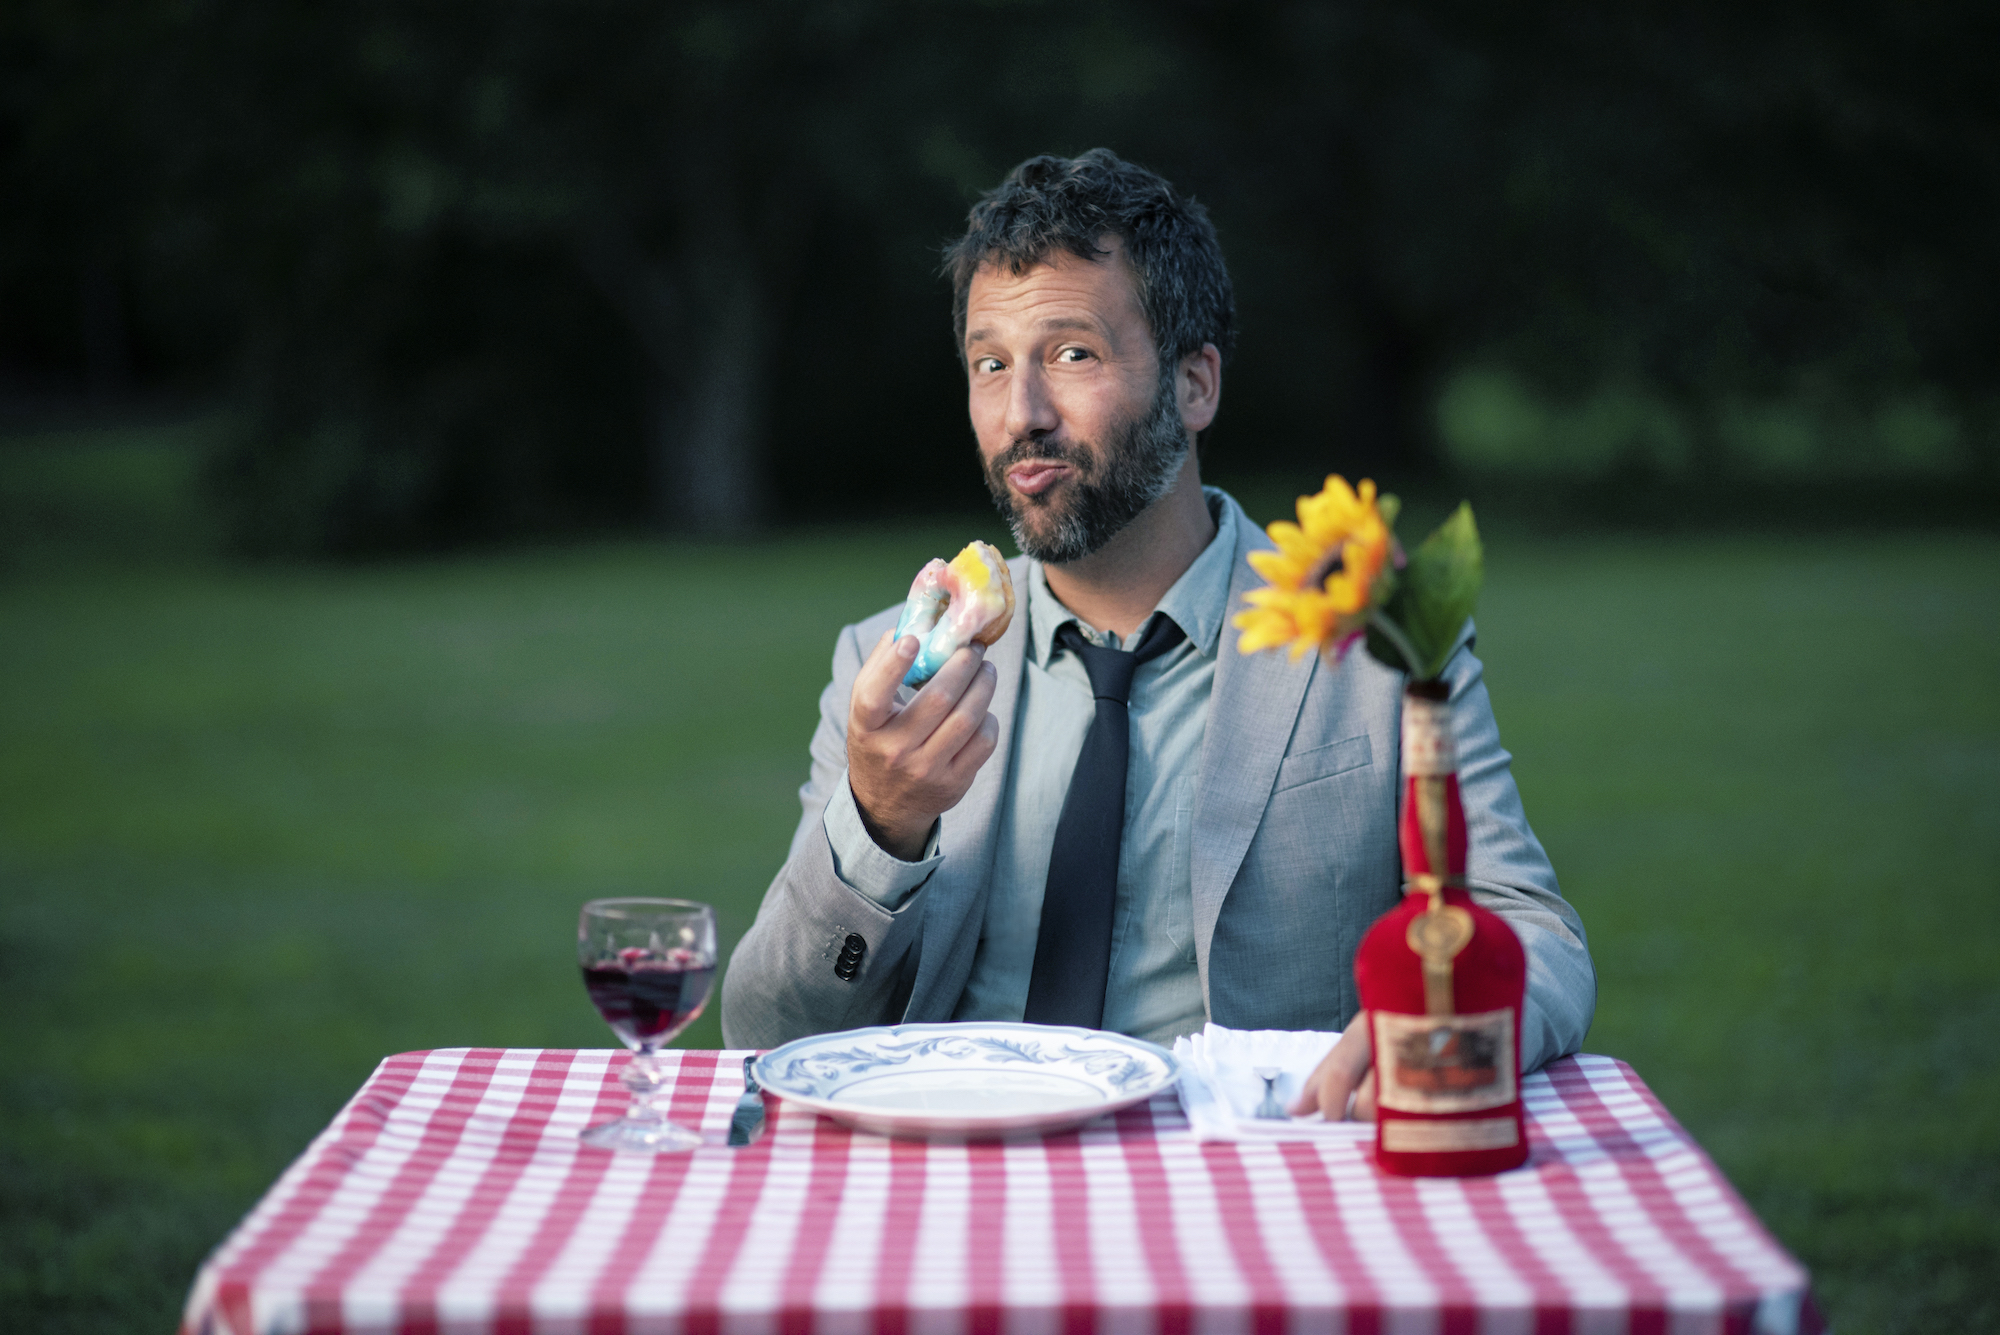 Dan Pashman eating a donut at a table in a field